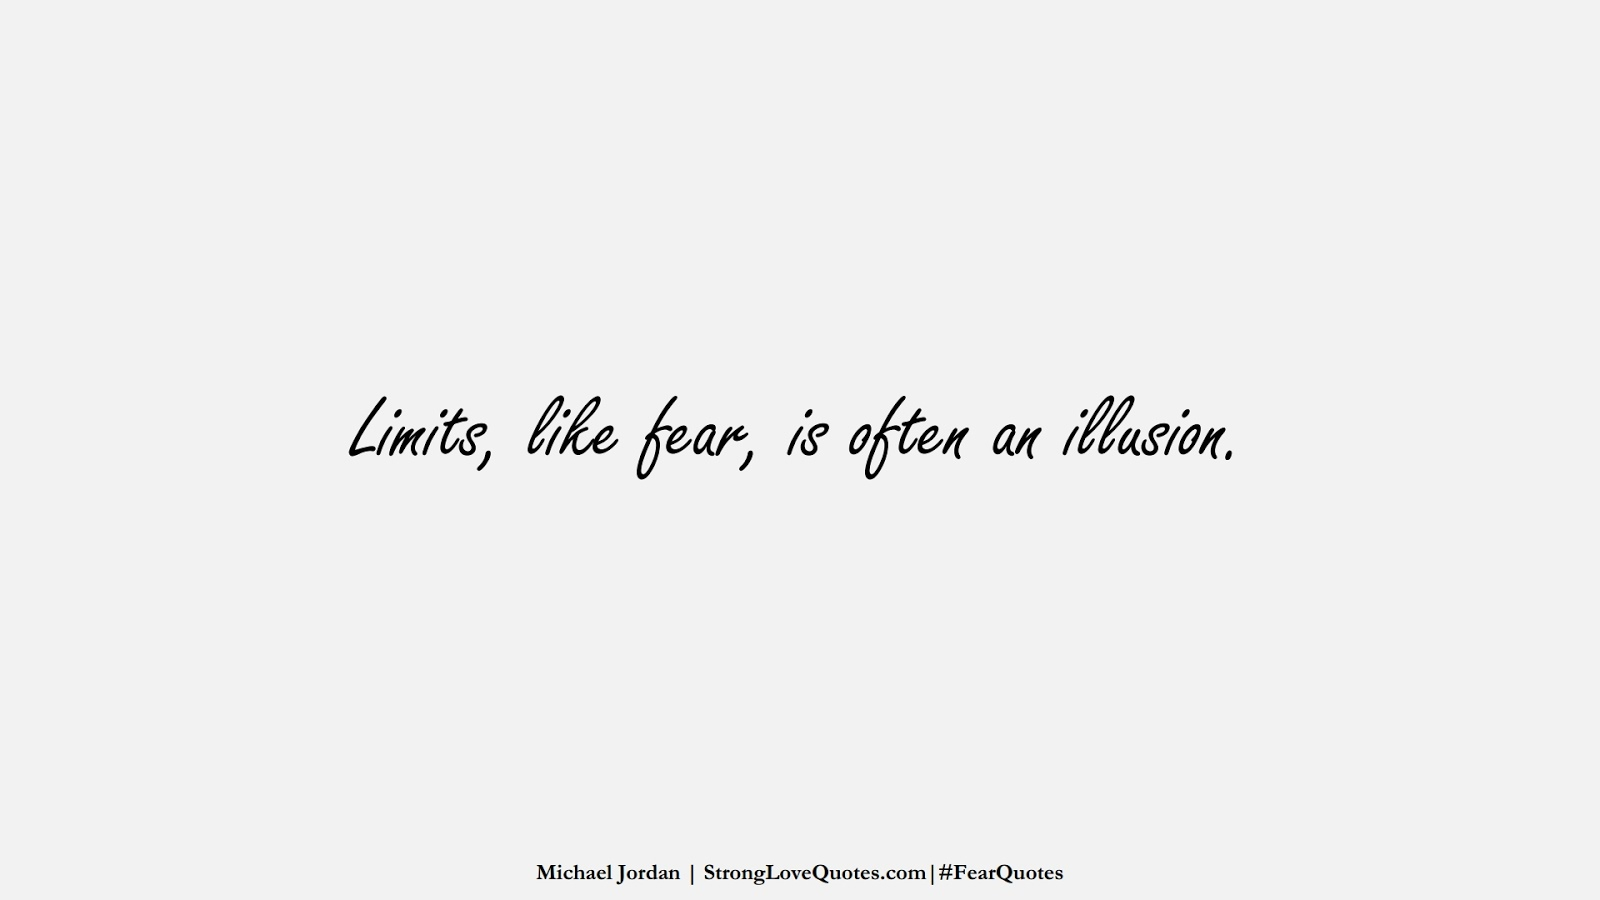 Limits, like fear, is often an illusion. (Michael Jordan);  #FearQuotes